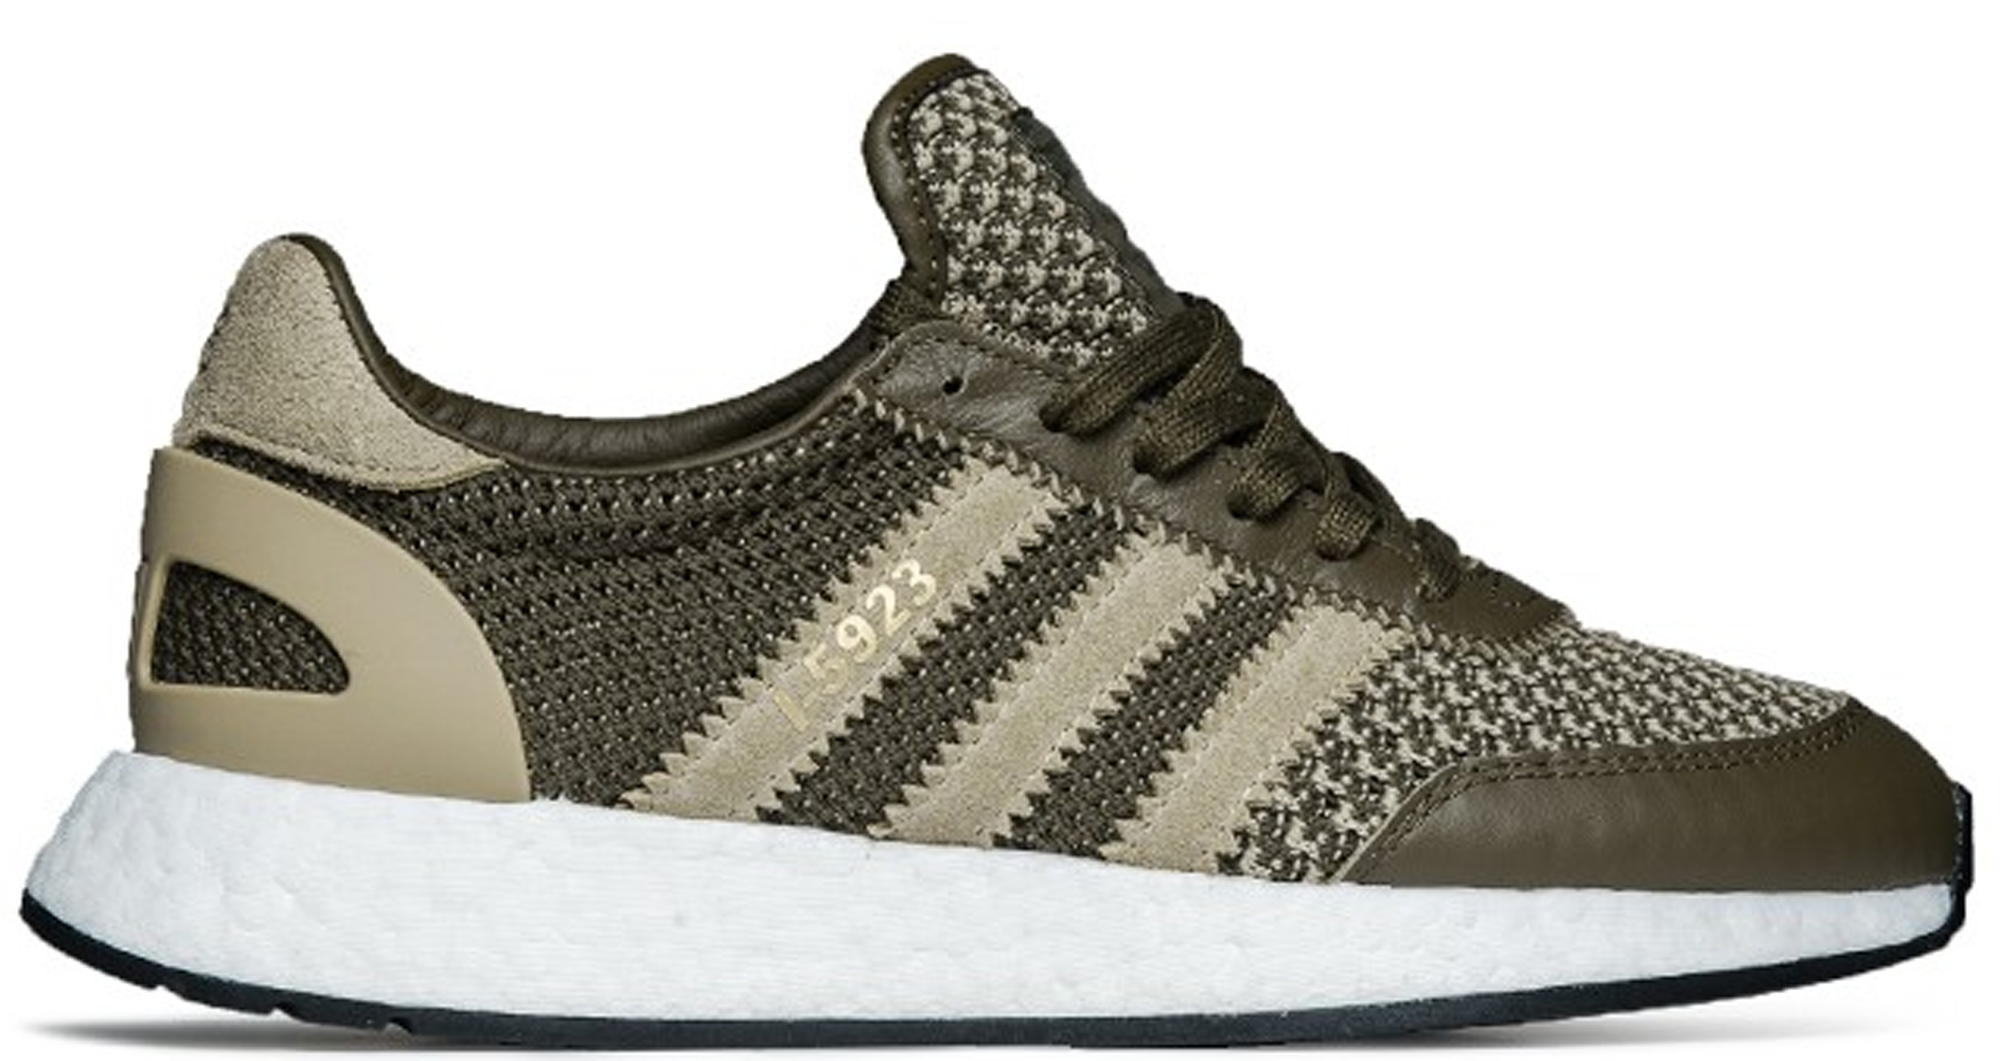 adidas I-5923 Neighborhood Olive